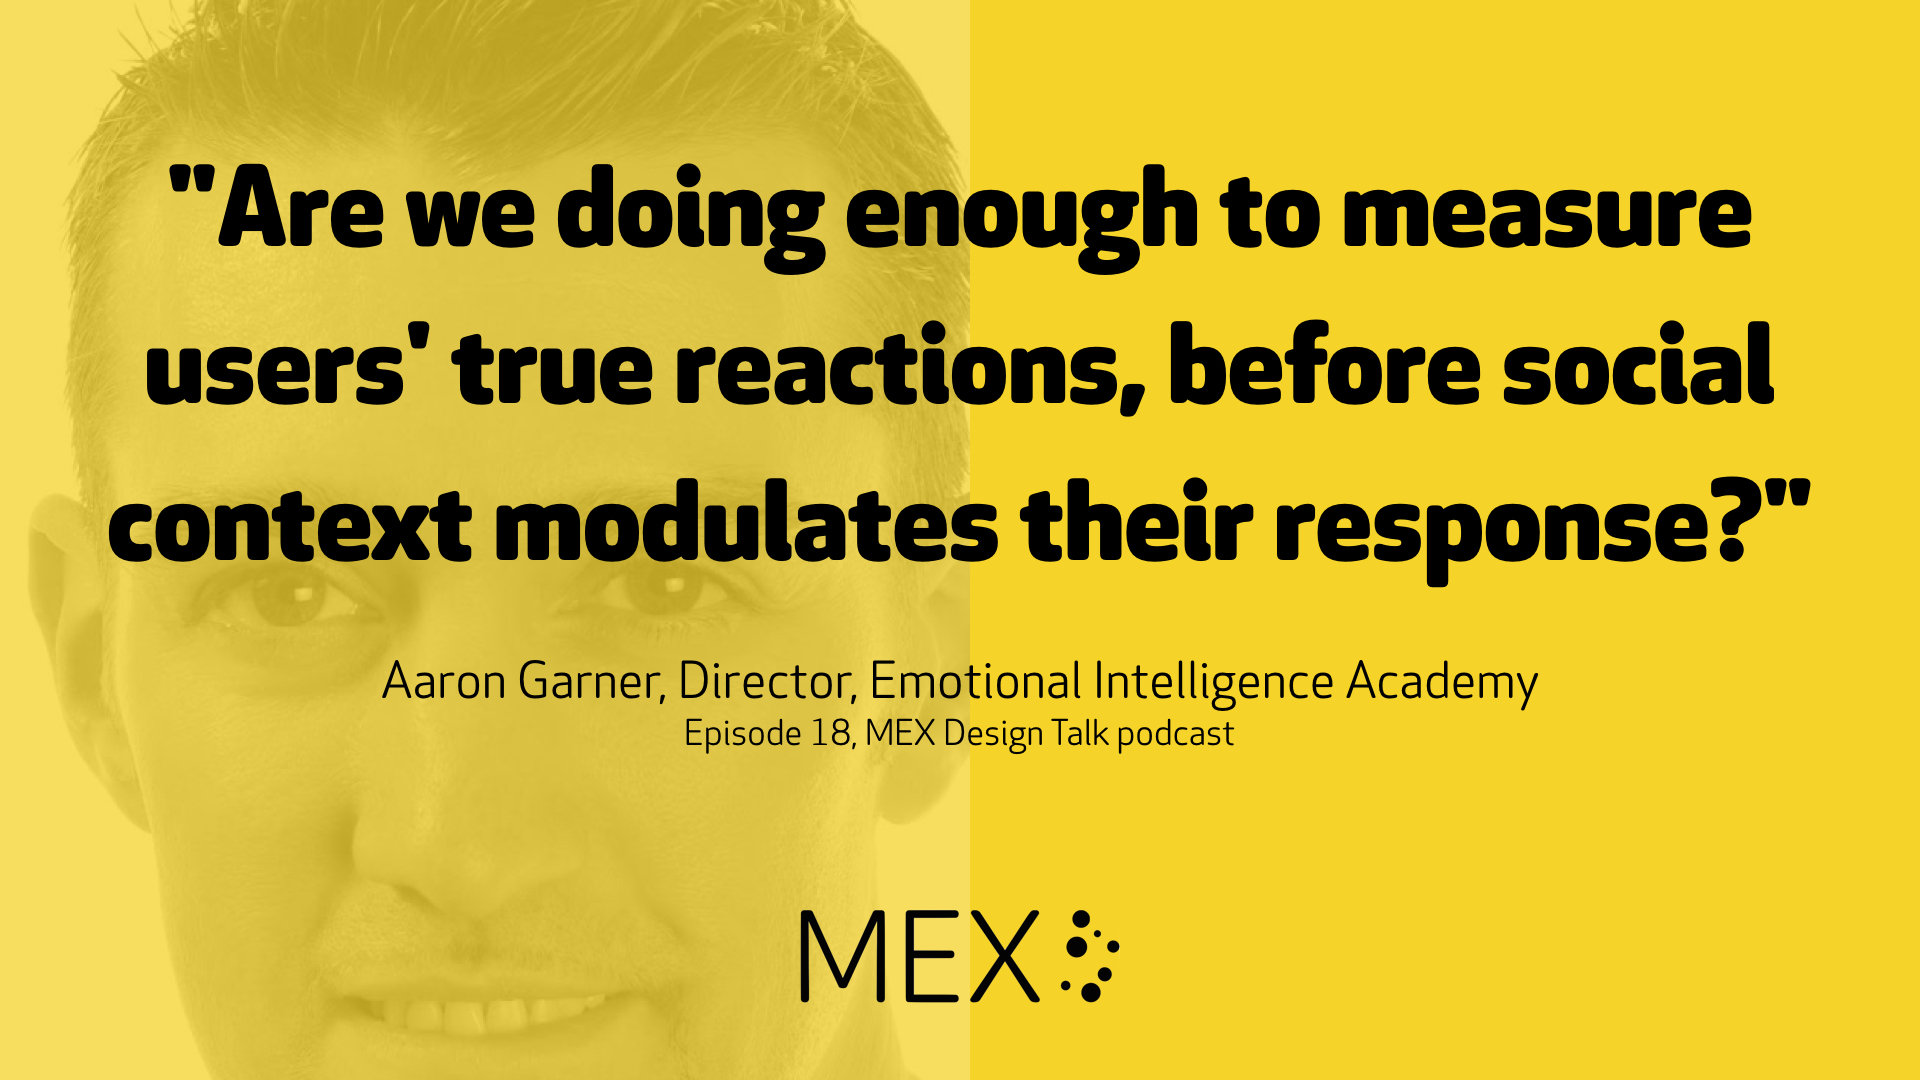 """Are we doing enough to measure users' true reactions, before social context modulates their response?"" -- Aaron Garner, Director, Emotional Intelligence Academy, Episode 18, MEX Design Talk podcast"